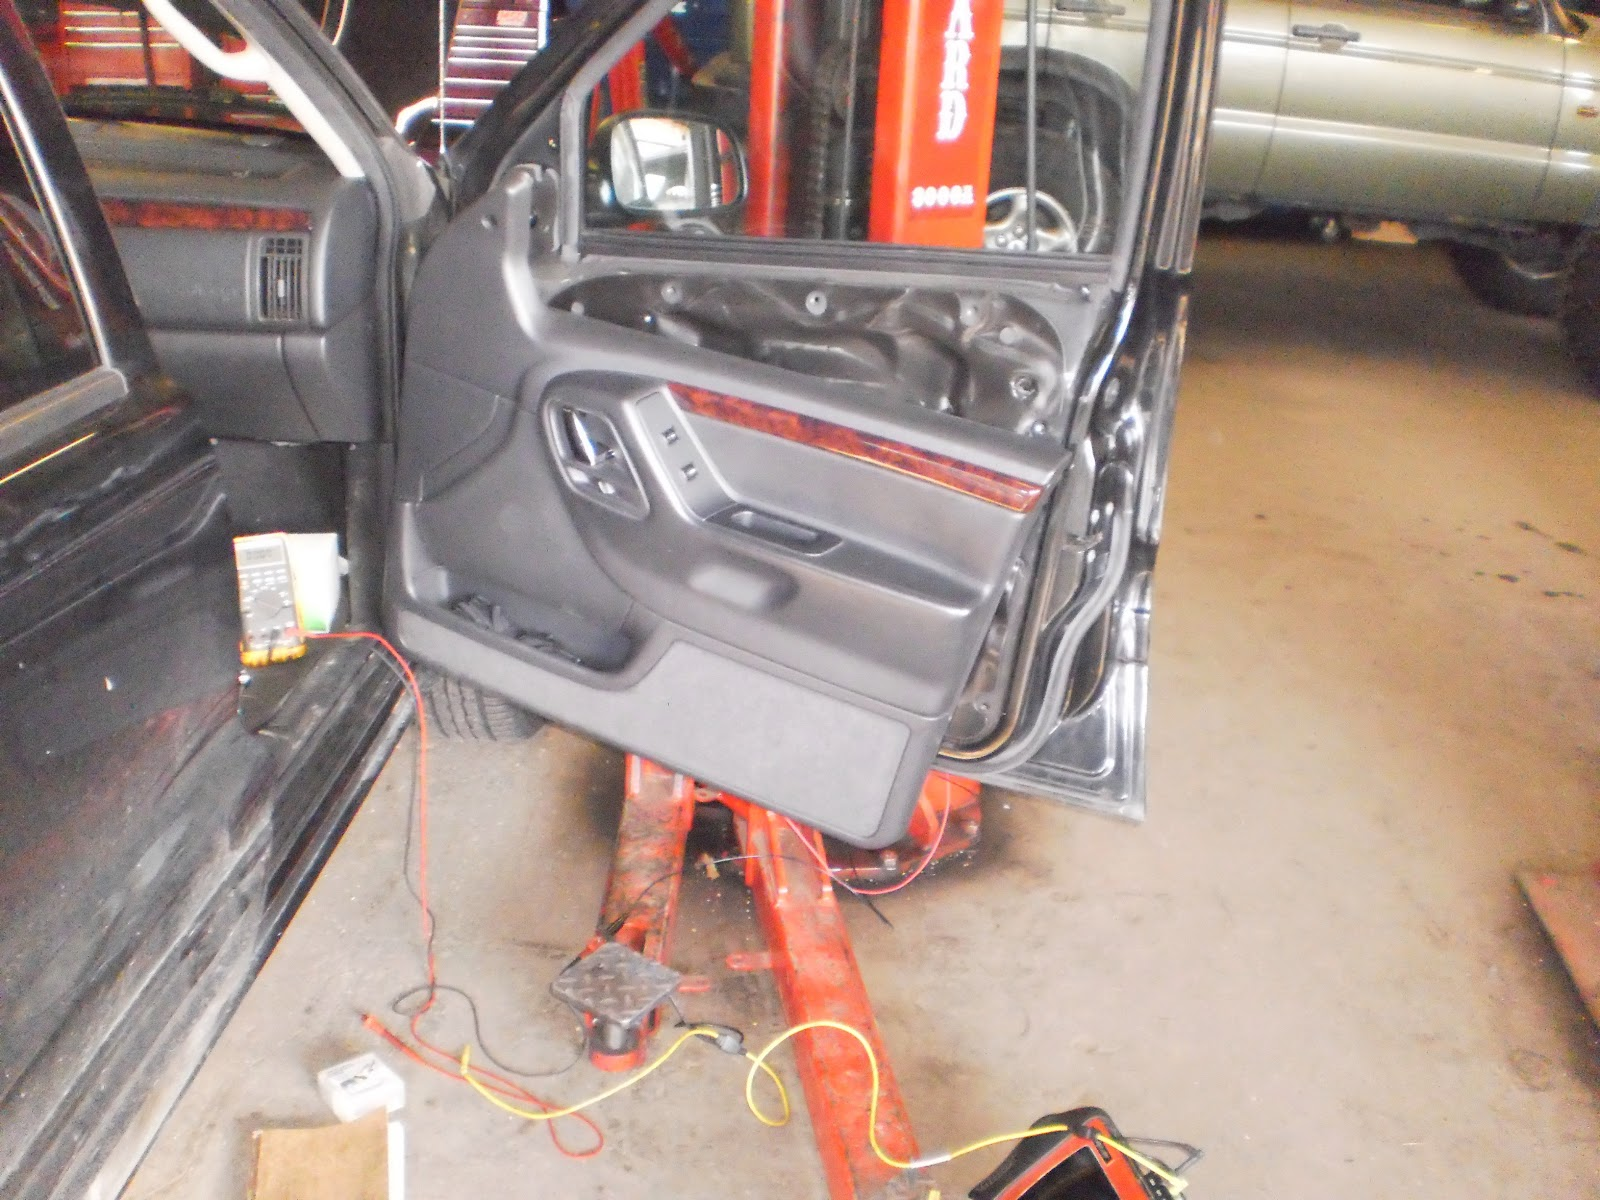 2004 jeep grand cherokee driver door wiring diagram reading a car harness pci bus 27 images